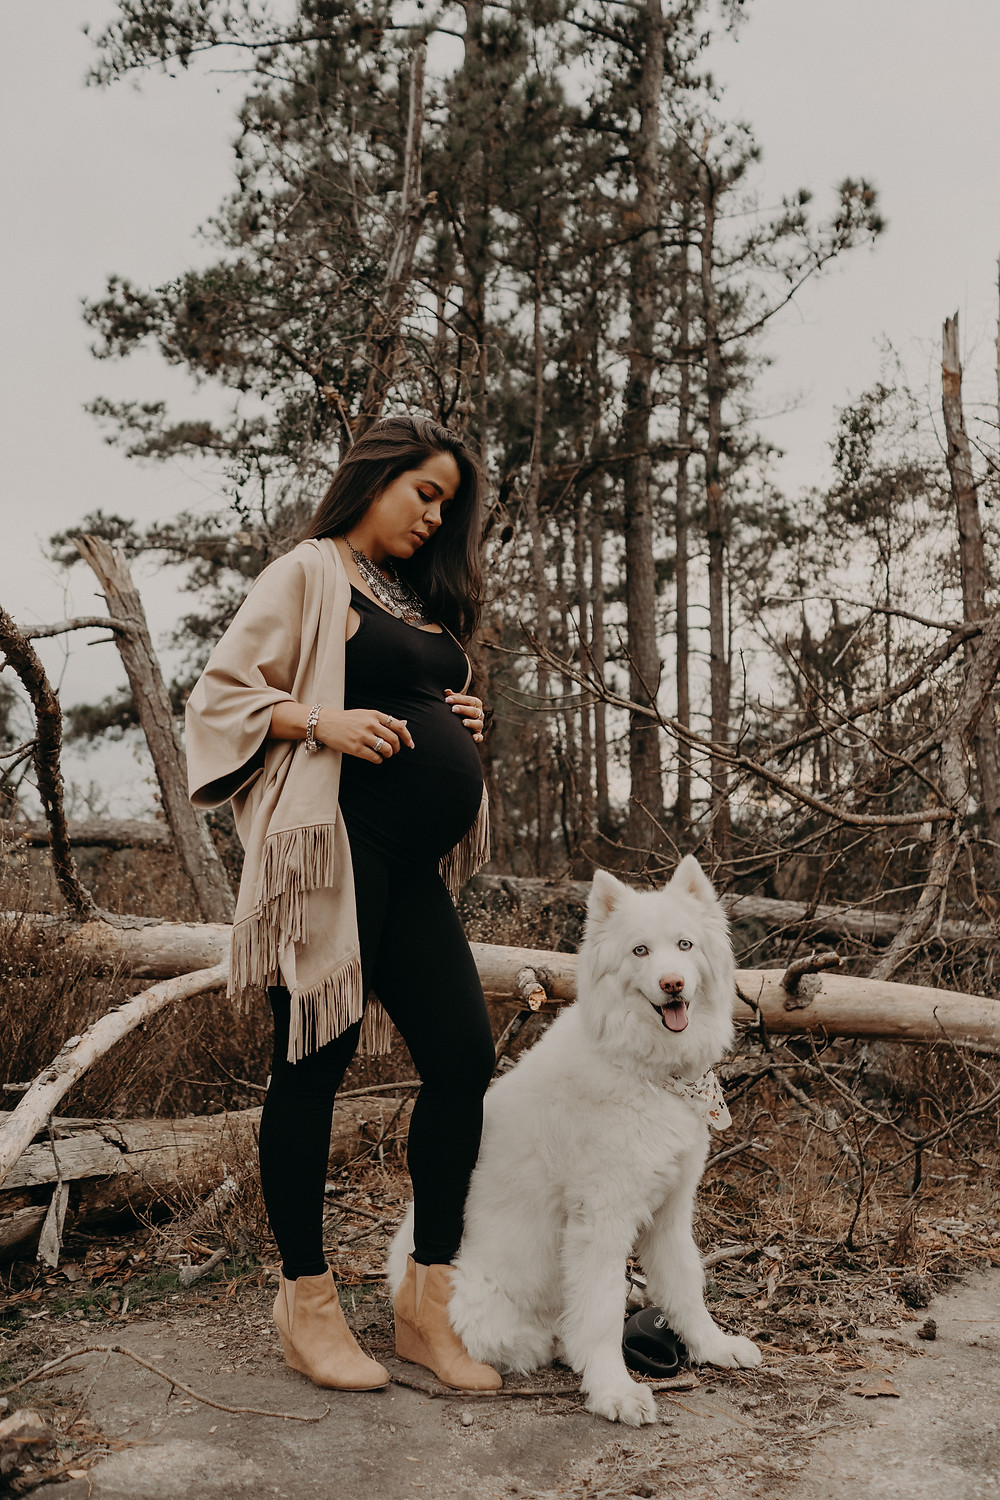 maternity session with a white husky